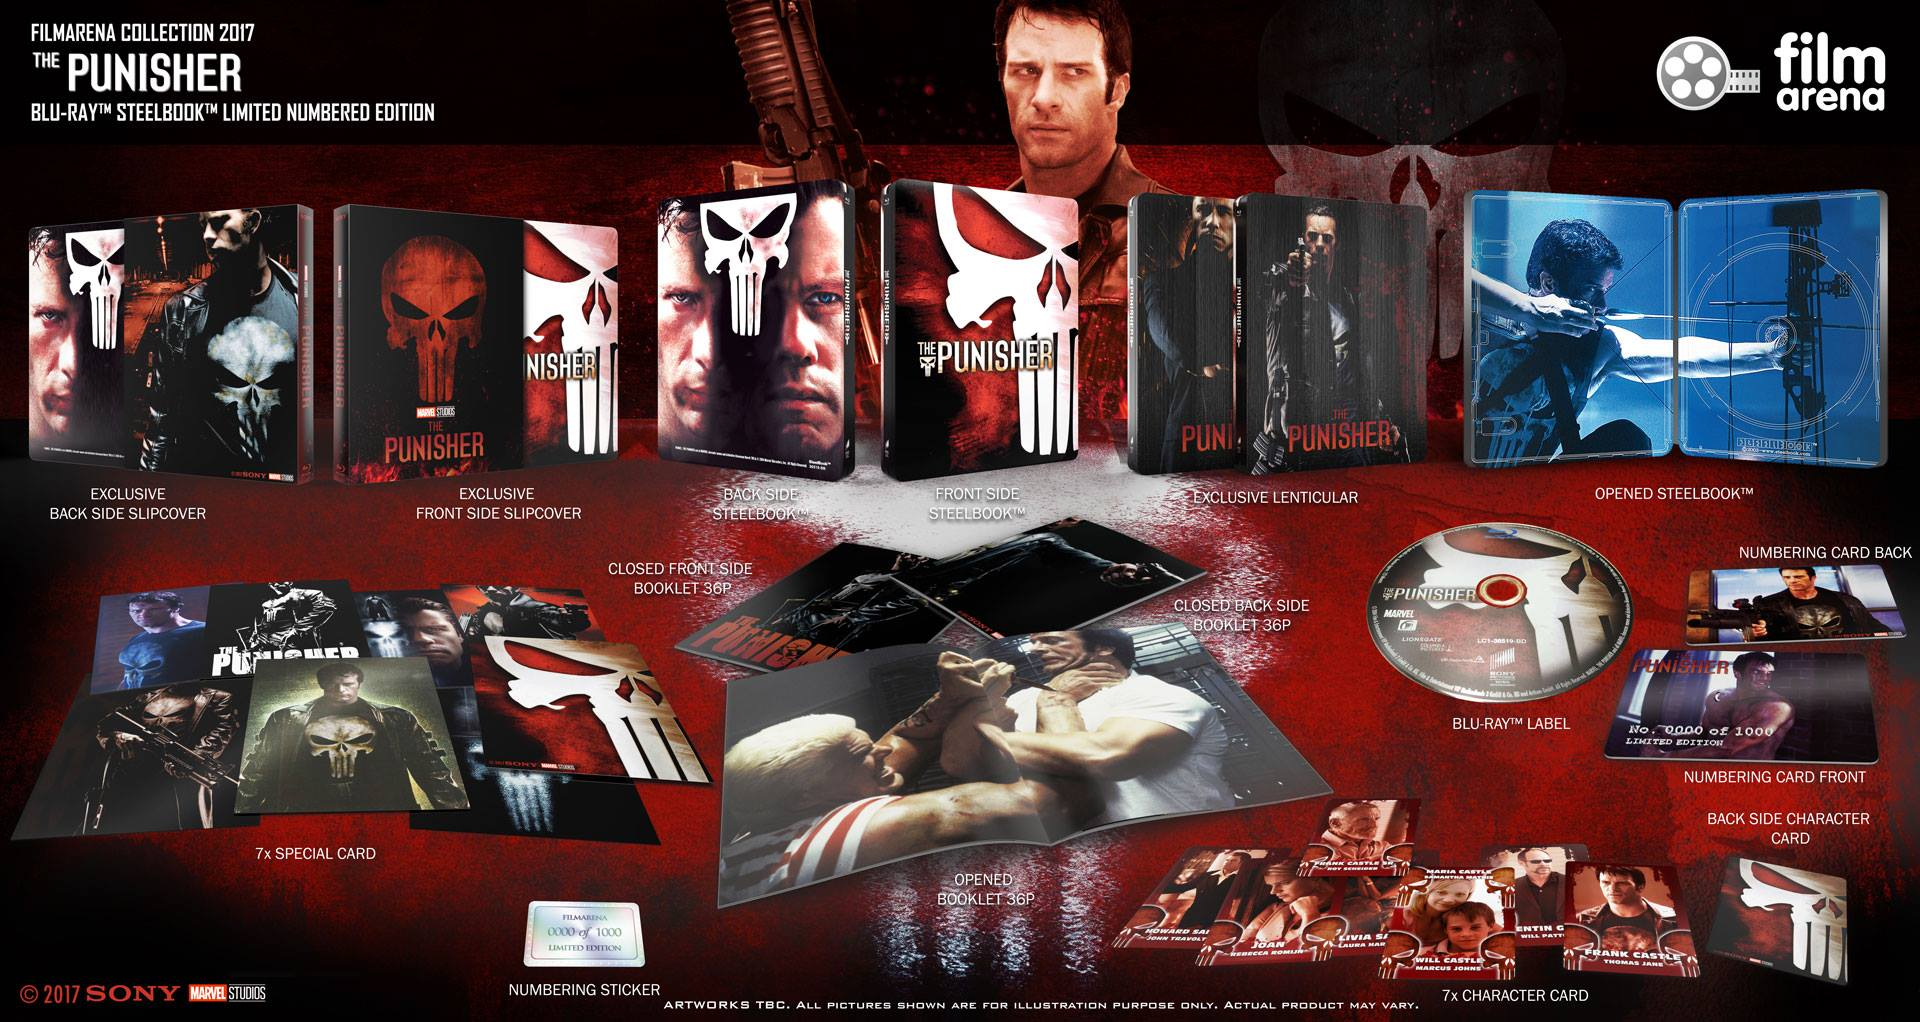 The Punisher steelbook filmarena2